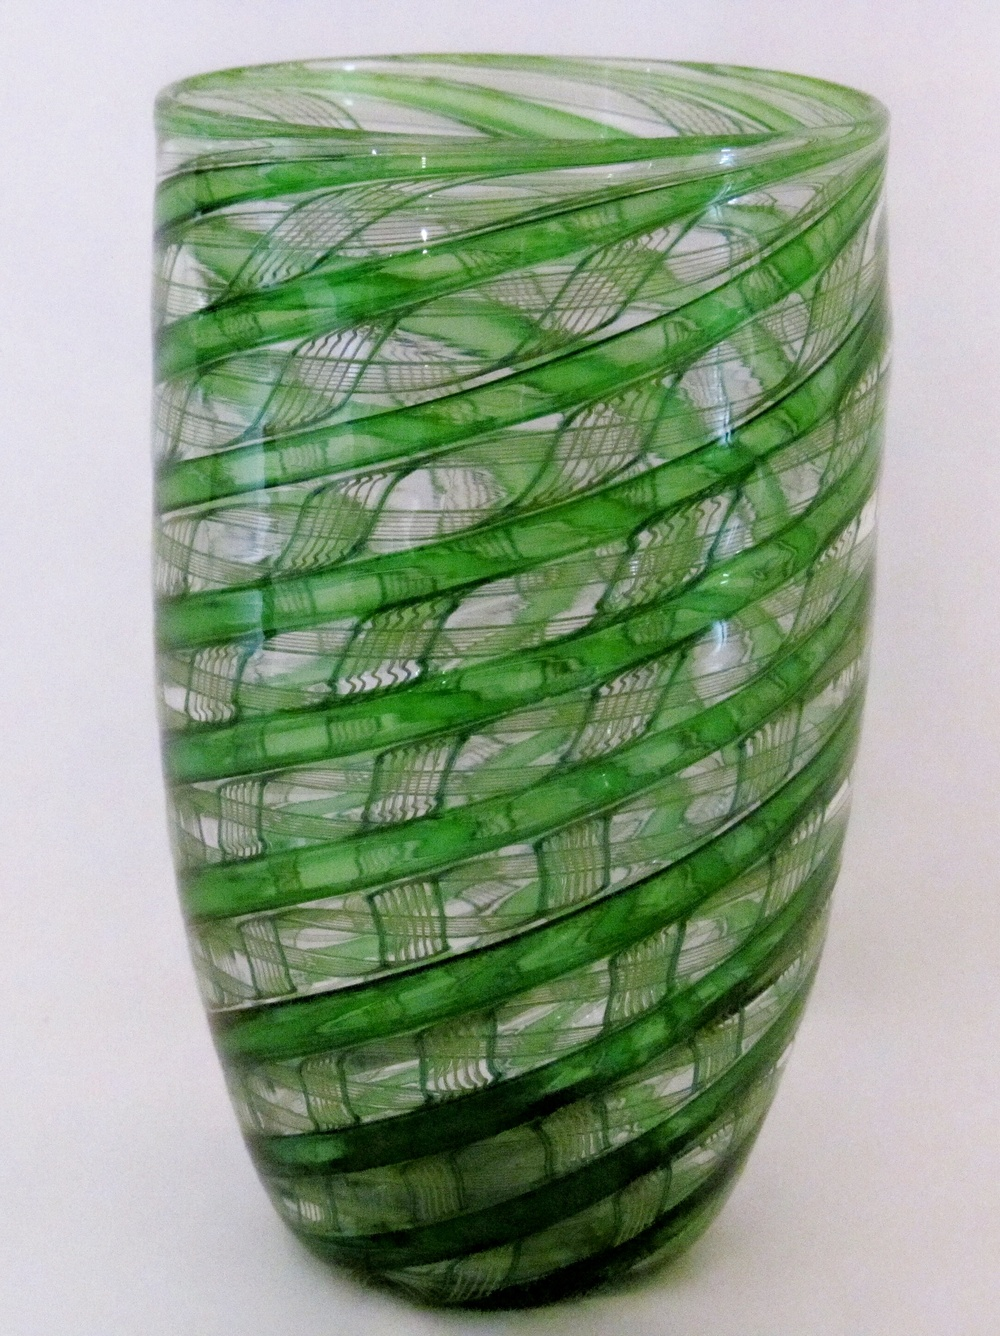 Light Green Cane Glass.jpg